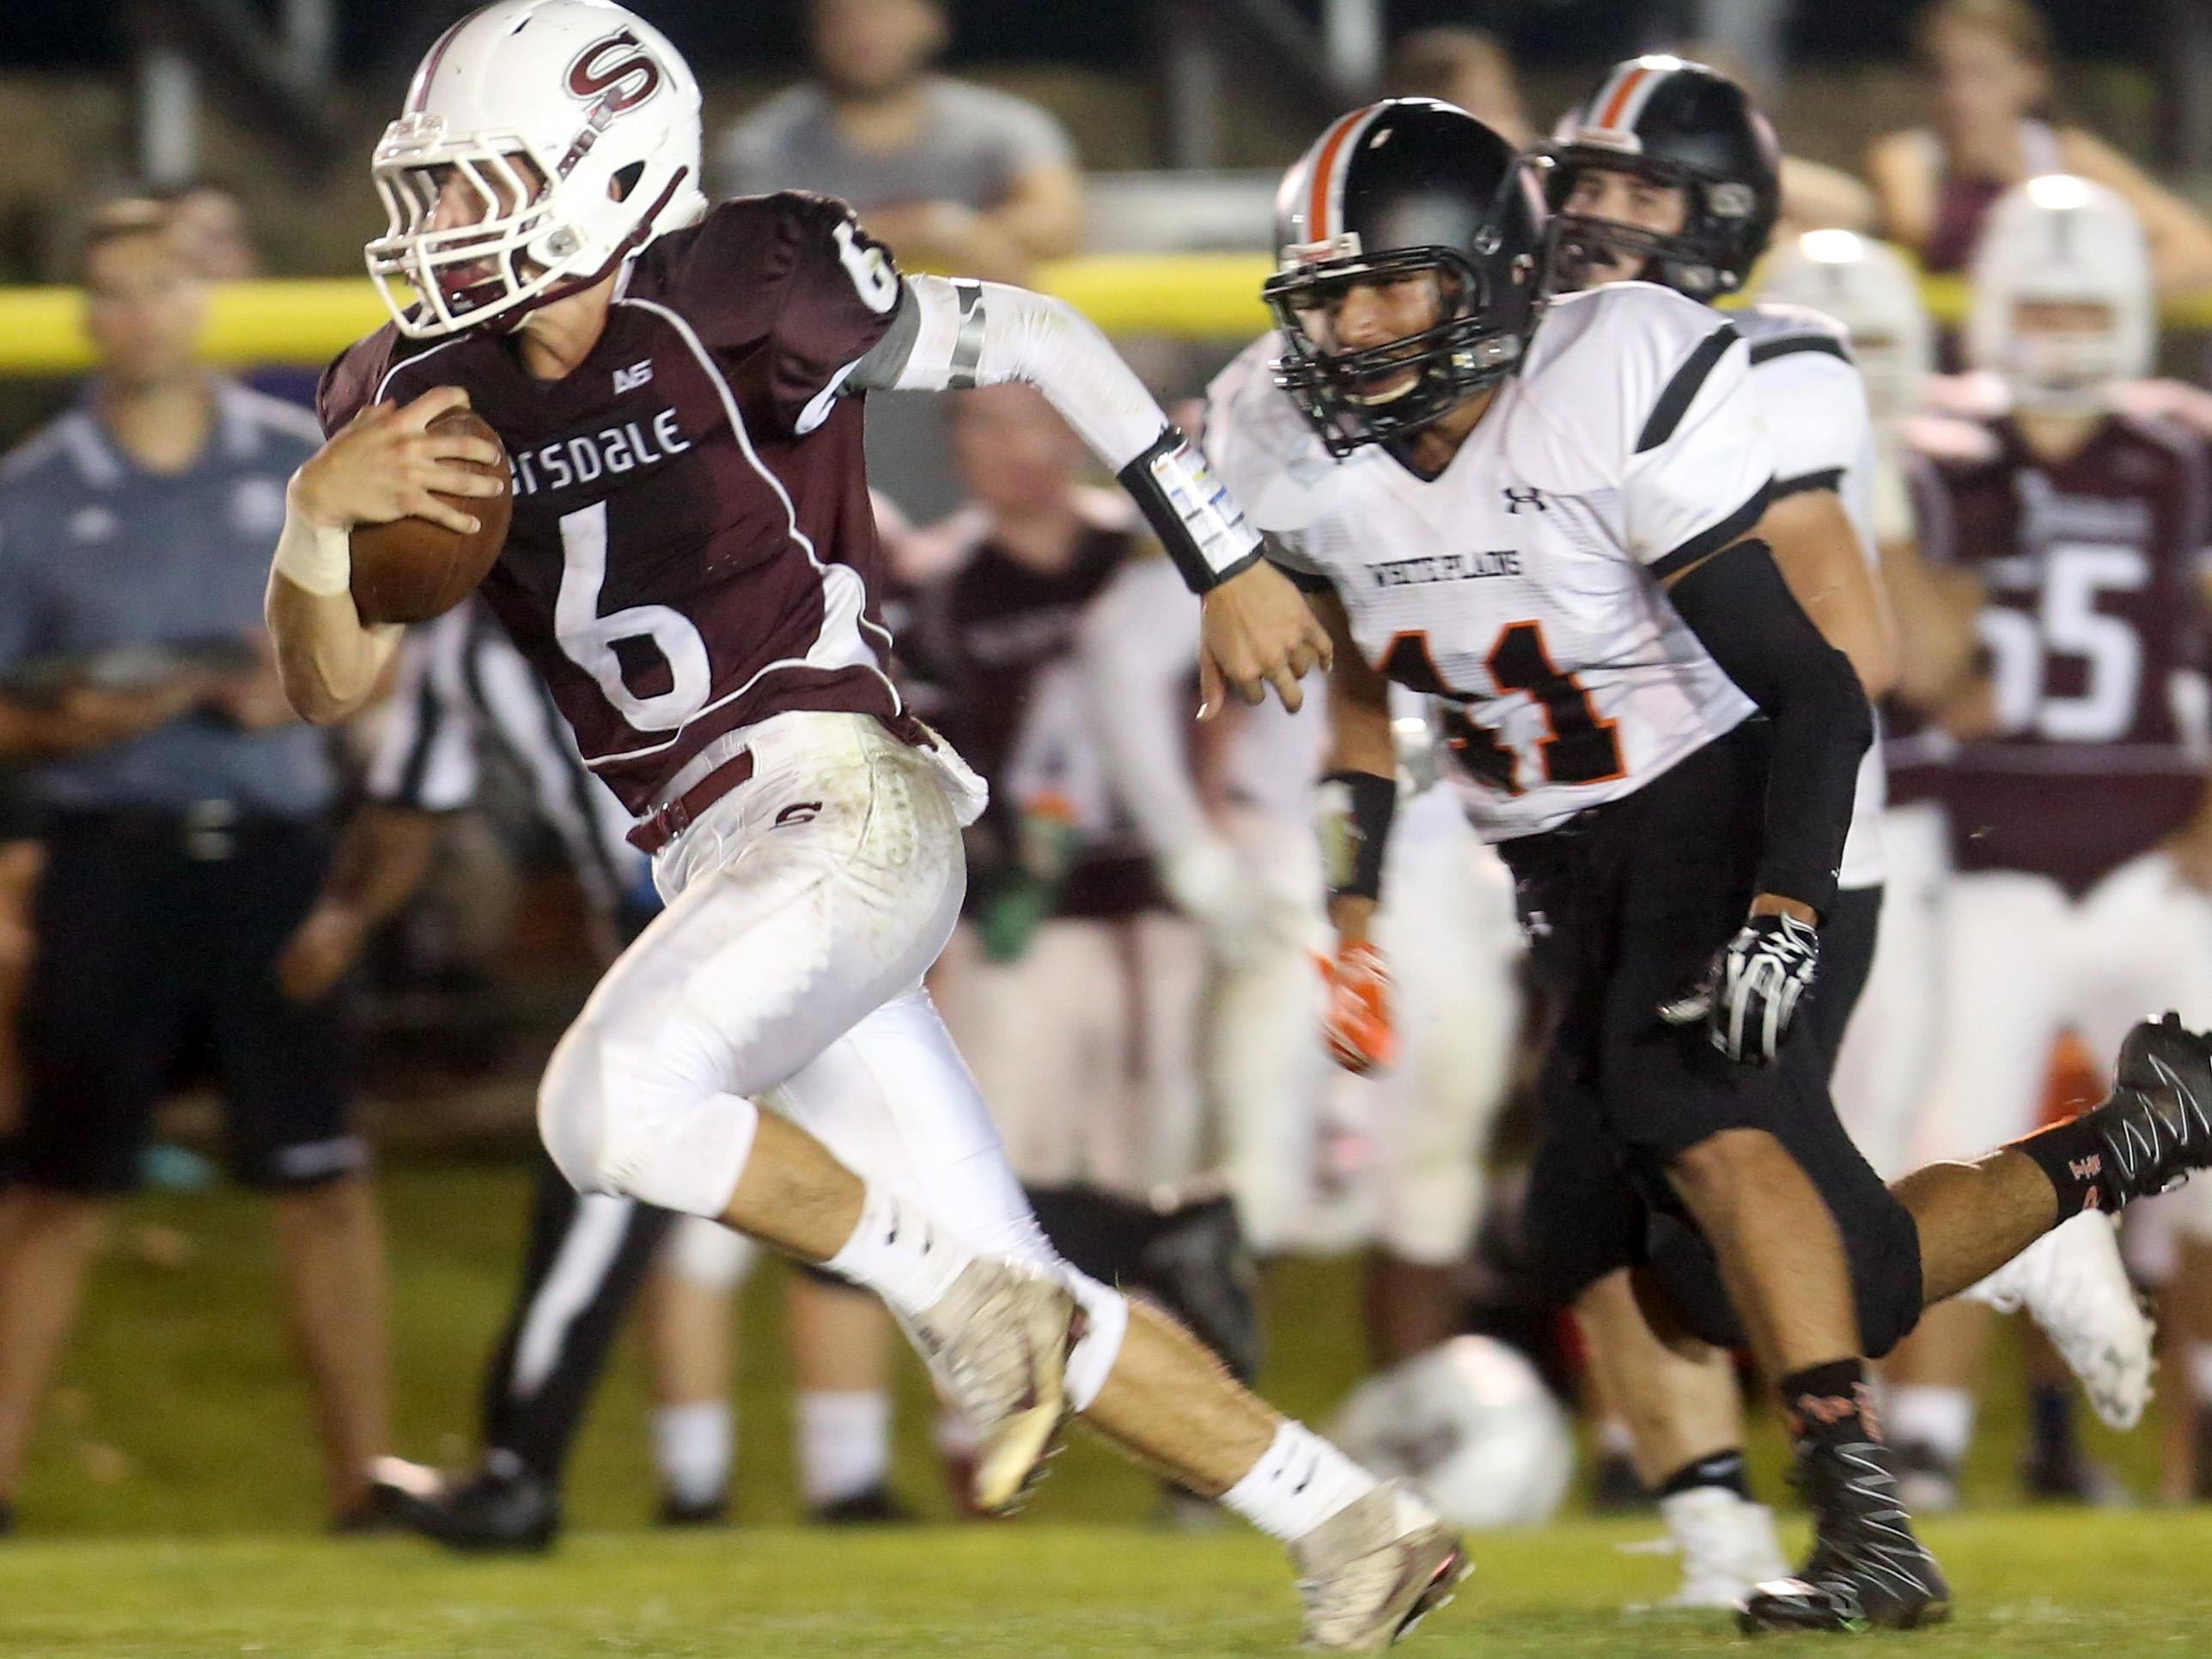 Scarsdale quarterback Barry Klein breaks free for a 40-yard touchdown run against White Plains during Friday night's game at Scarsdale High School.